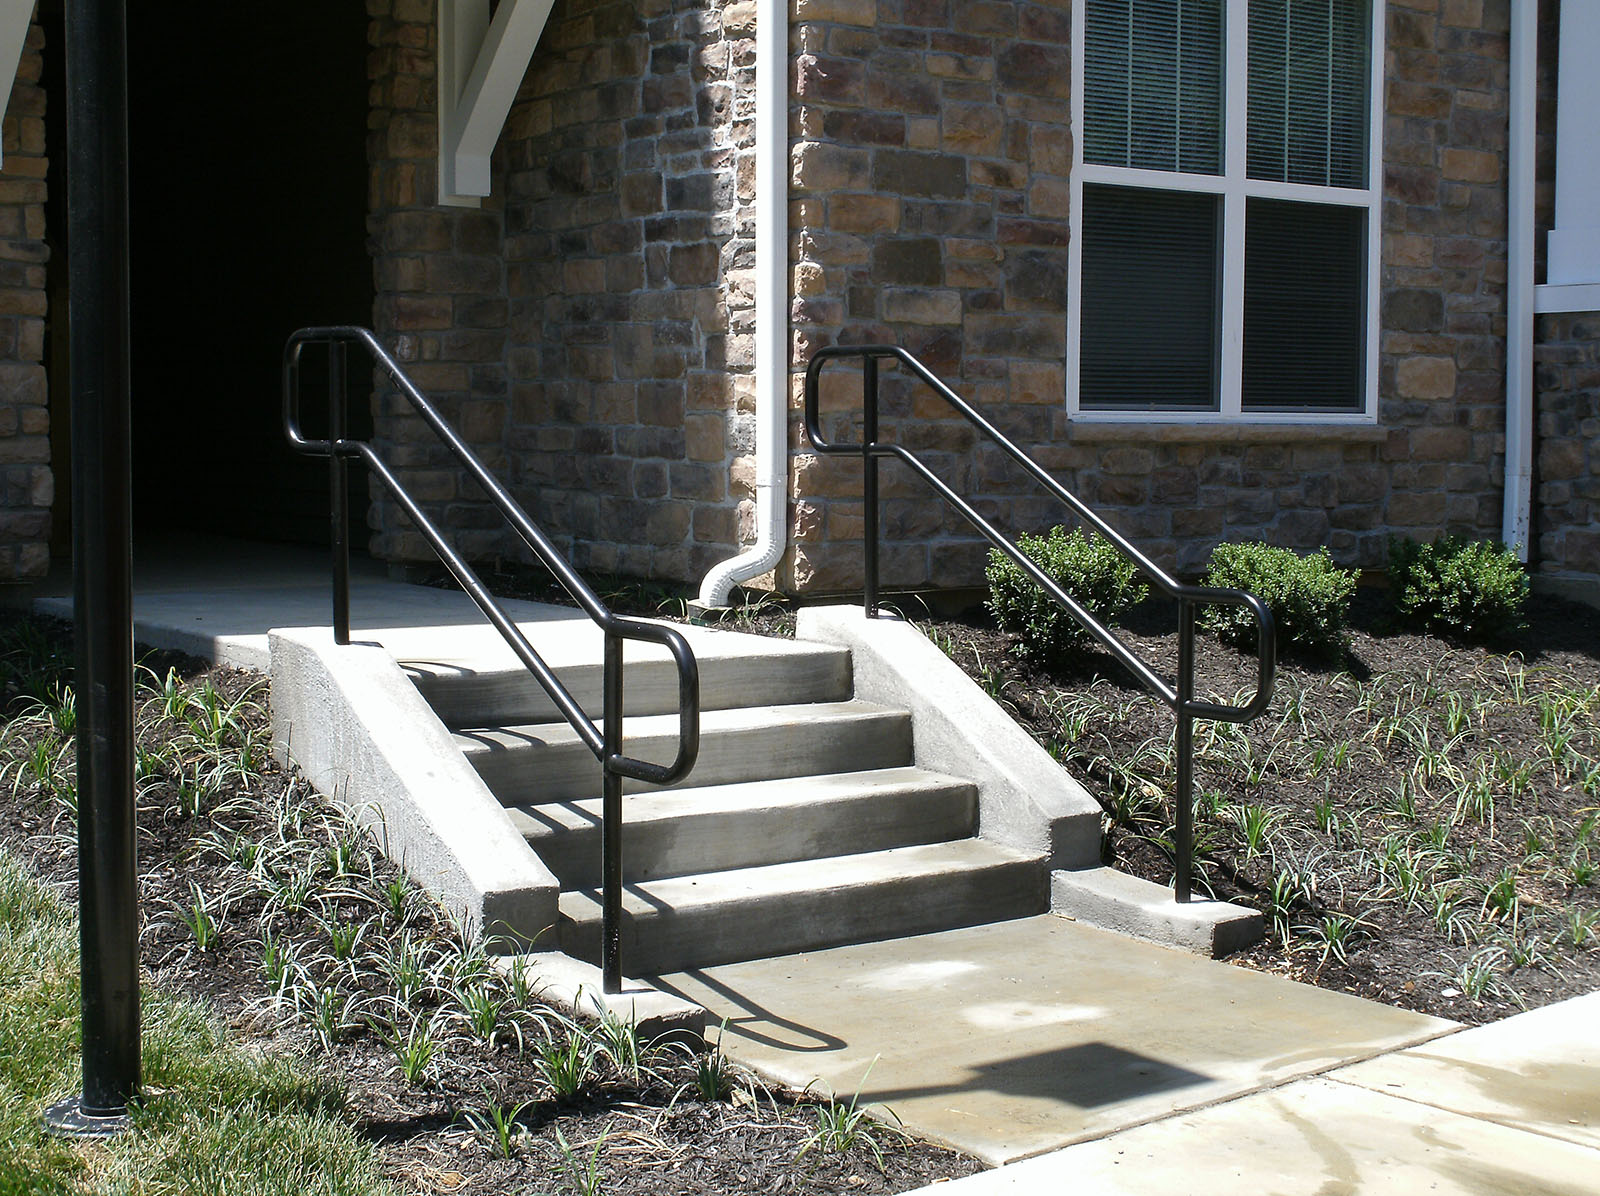 Pipe Rails - Pipe rails are commonly used in commercial applications. They are often made without vertical pickets